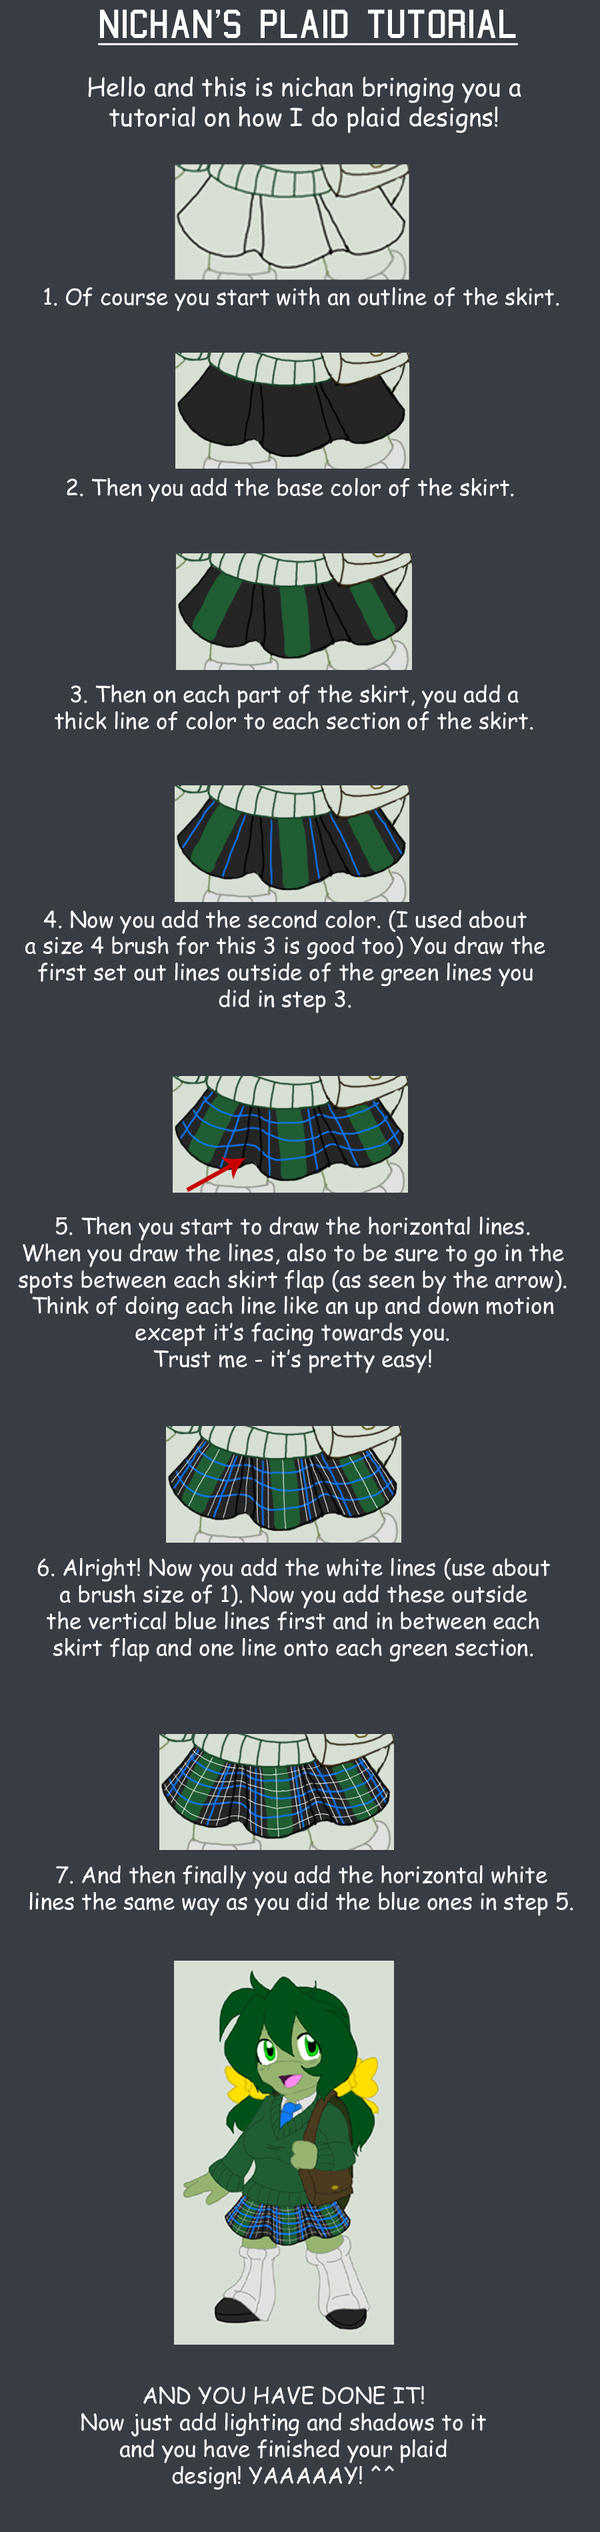 Simple Plaid Tutorial by nichan